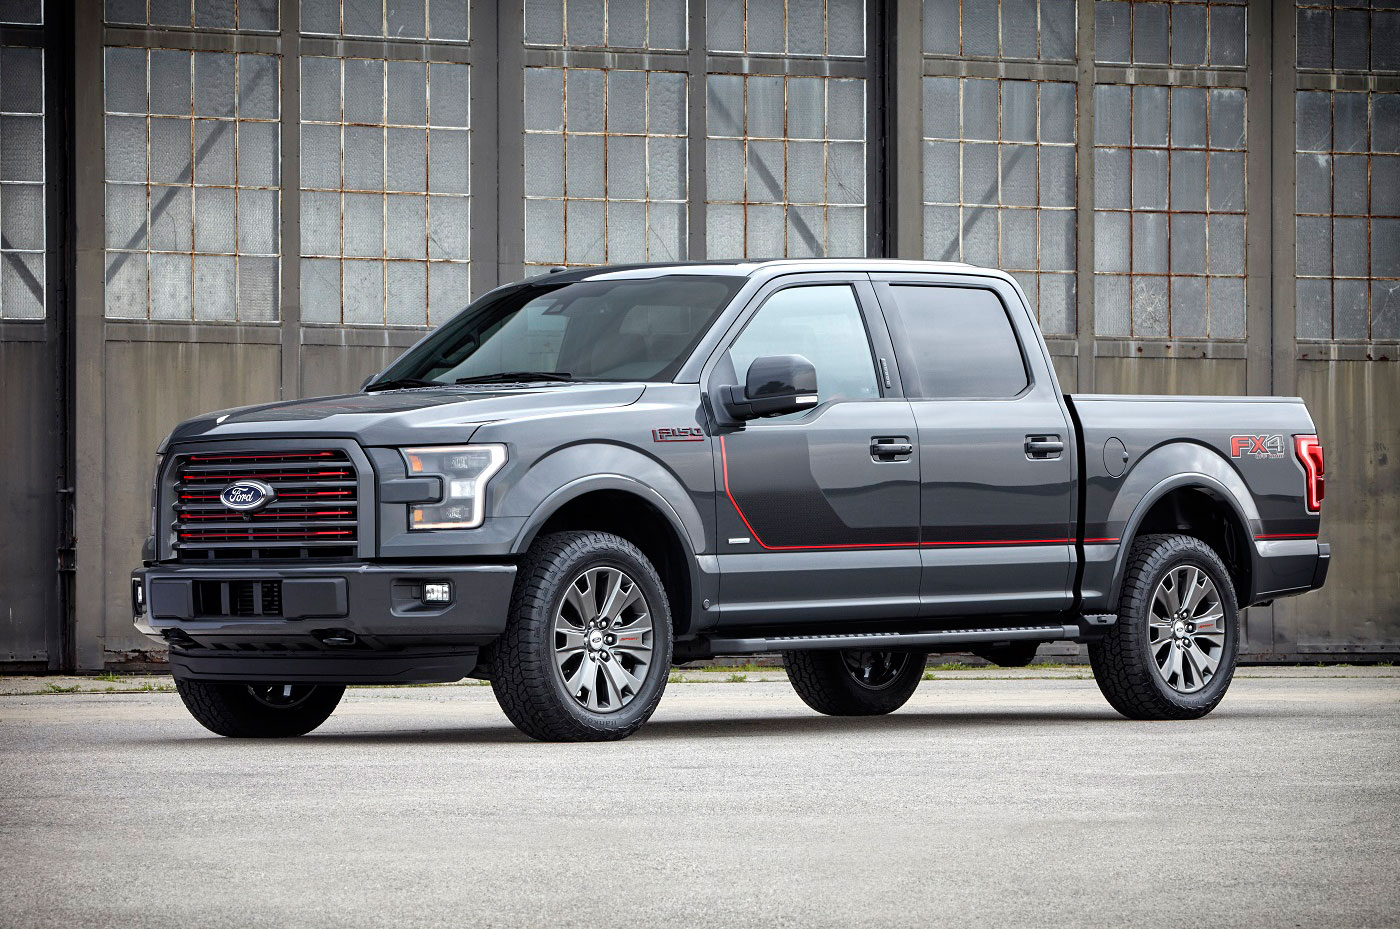 2016 Ford F 150 Release Date >> 2016 Ford F 150 Gets Special Edition Appearance Package